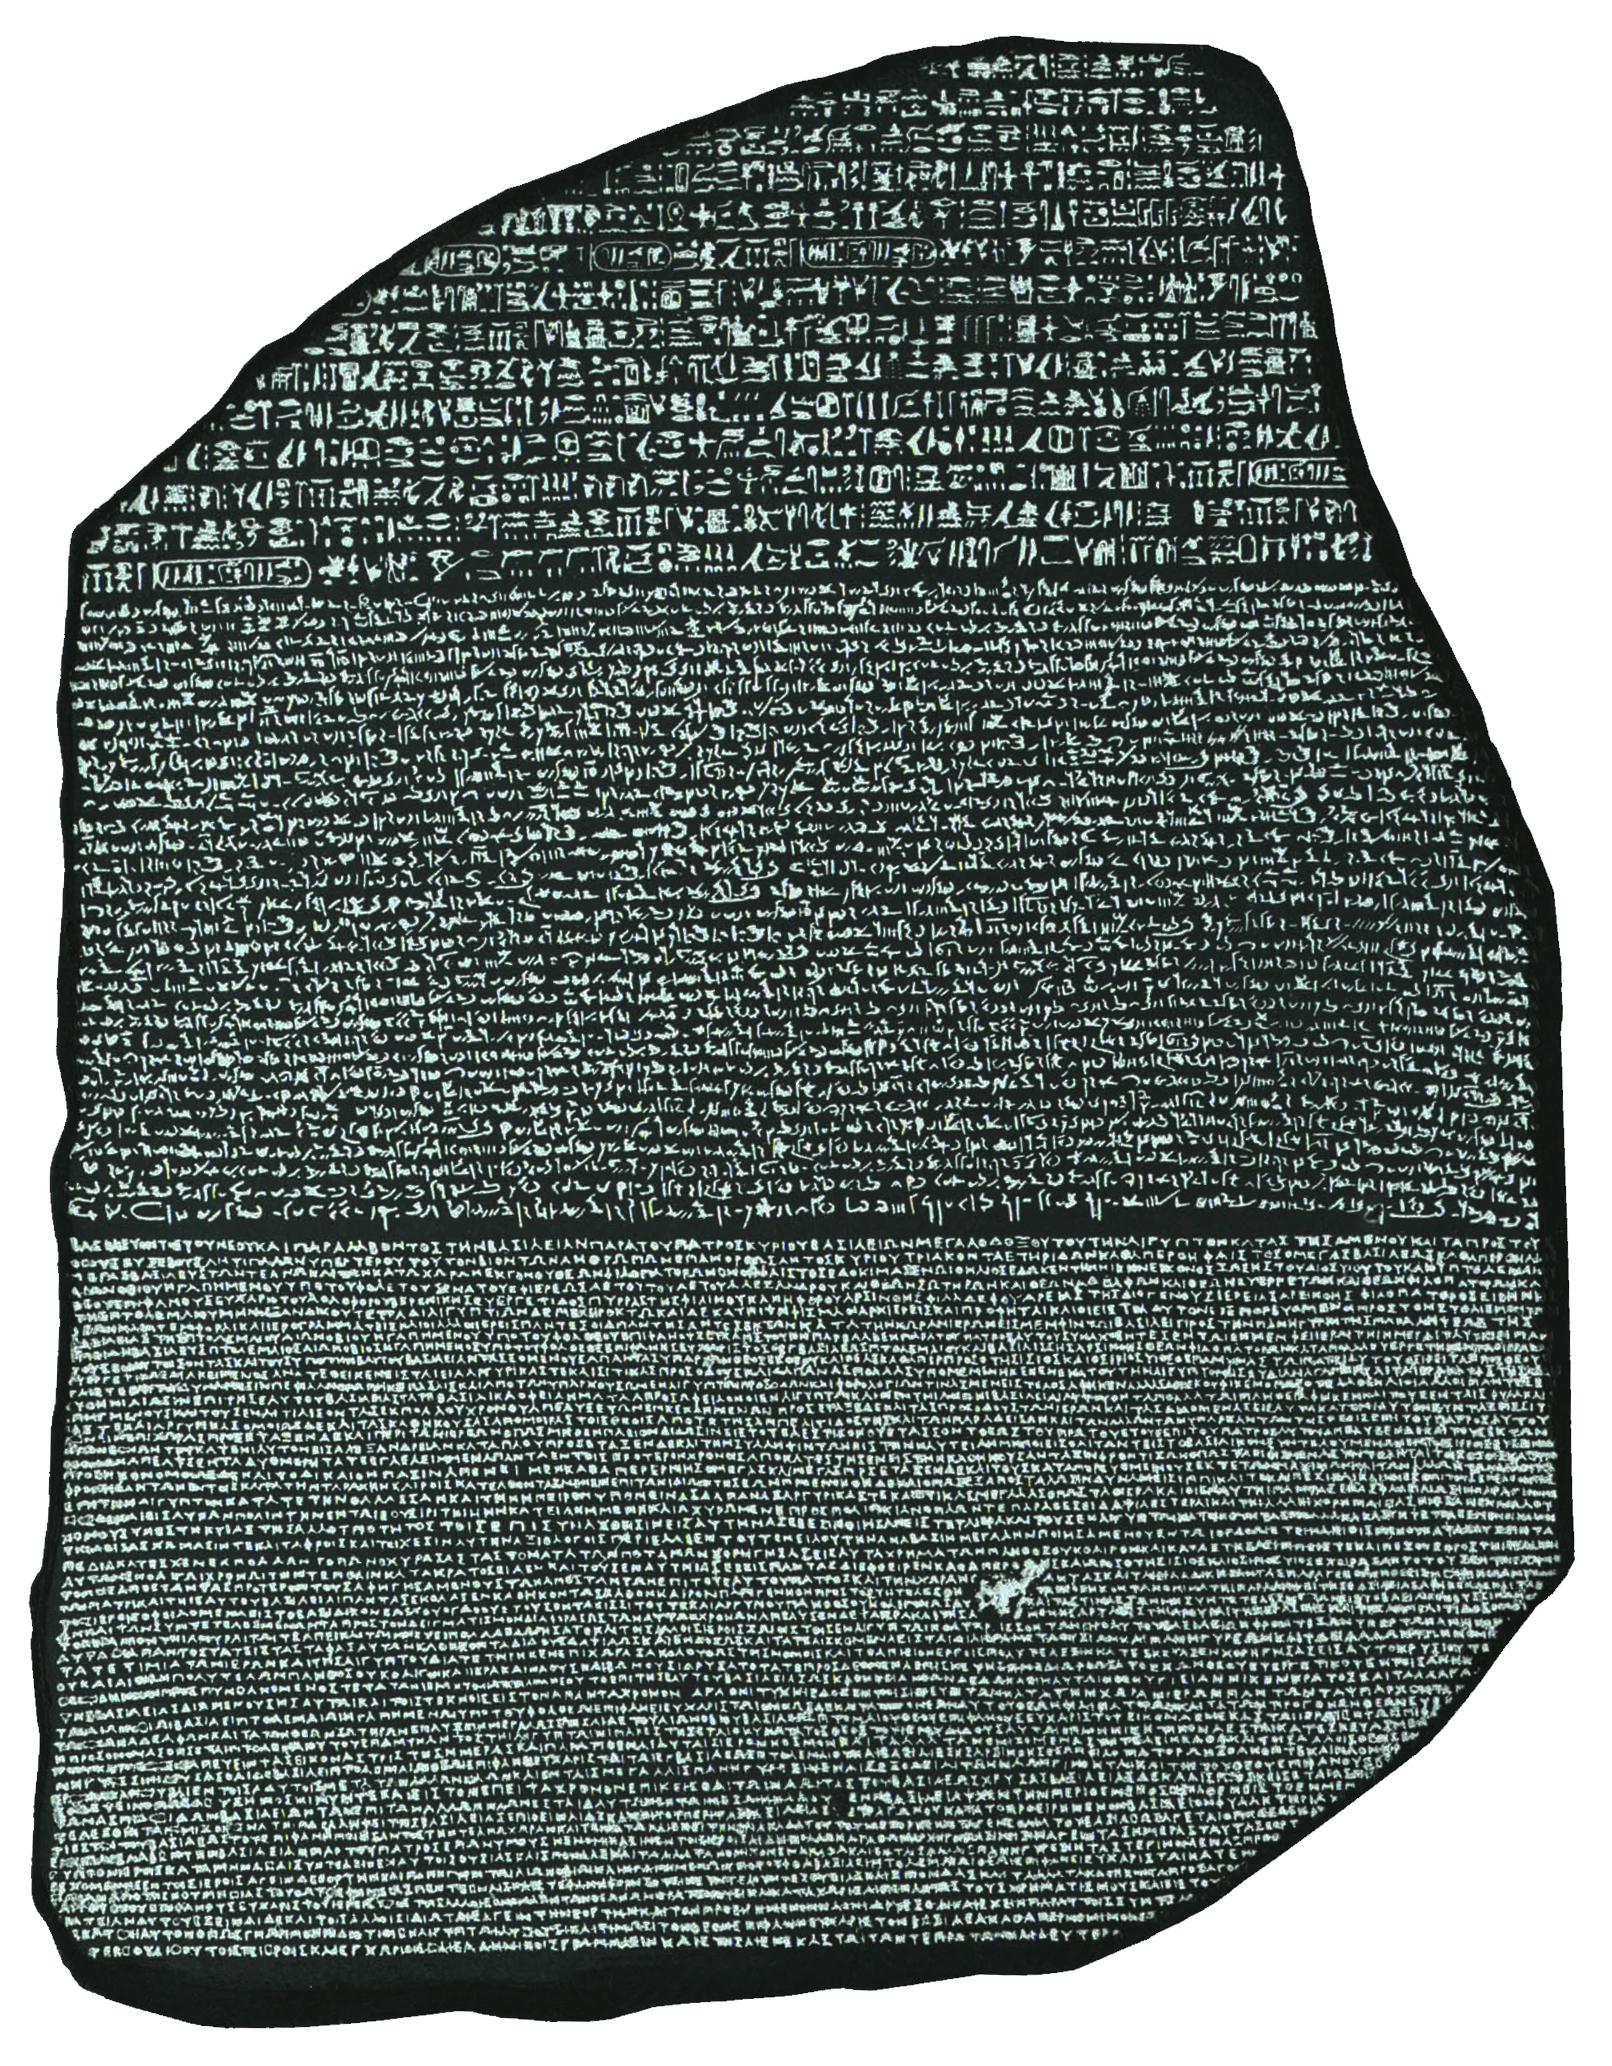 http://upload.wikimedia.org/wikipedia/commons/c/ca/Rosetta_Stone_BW.jpeg